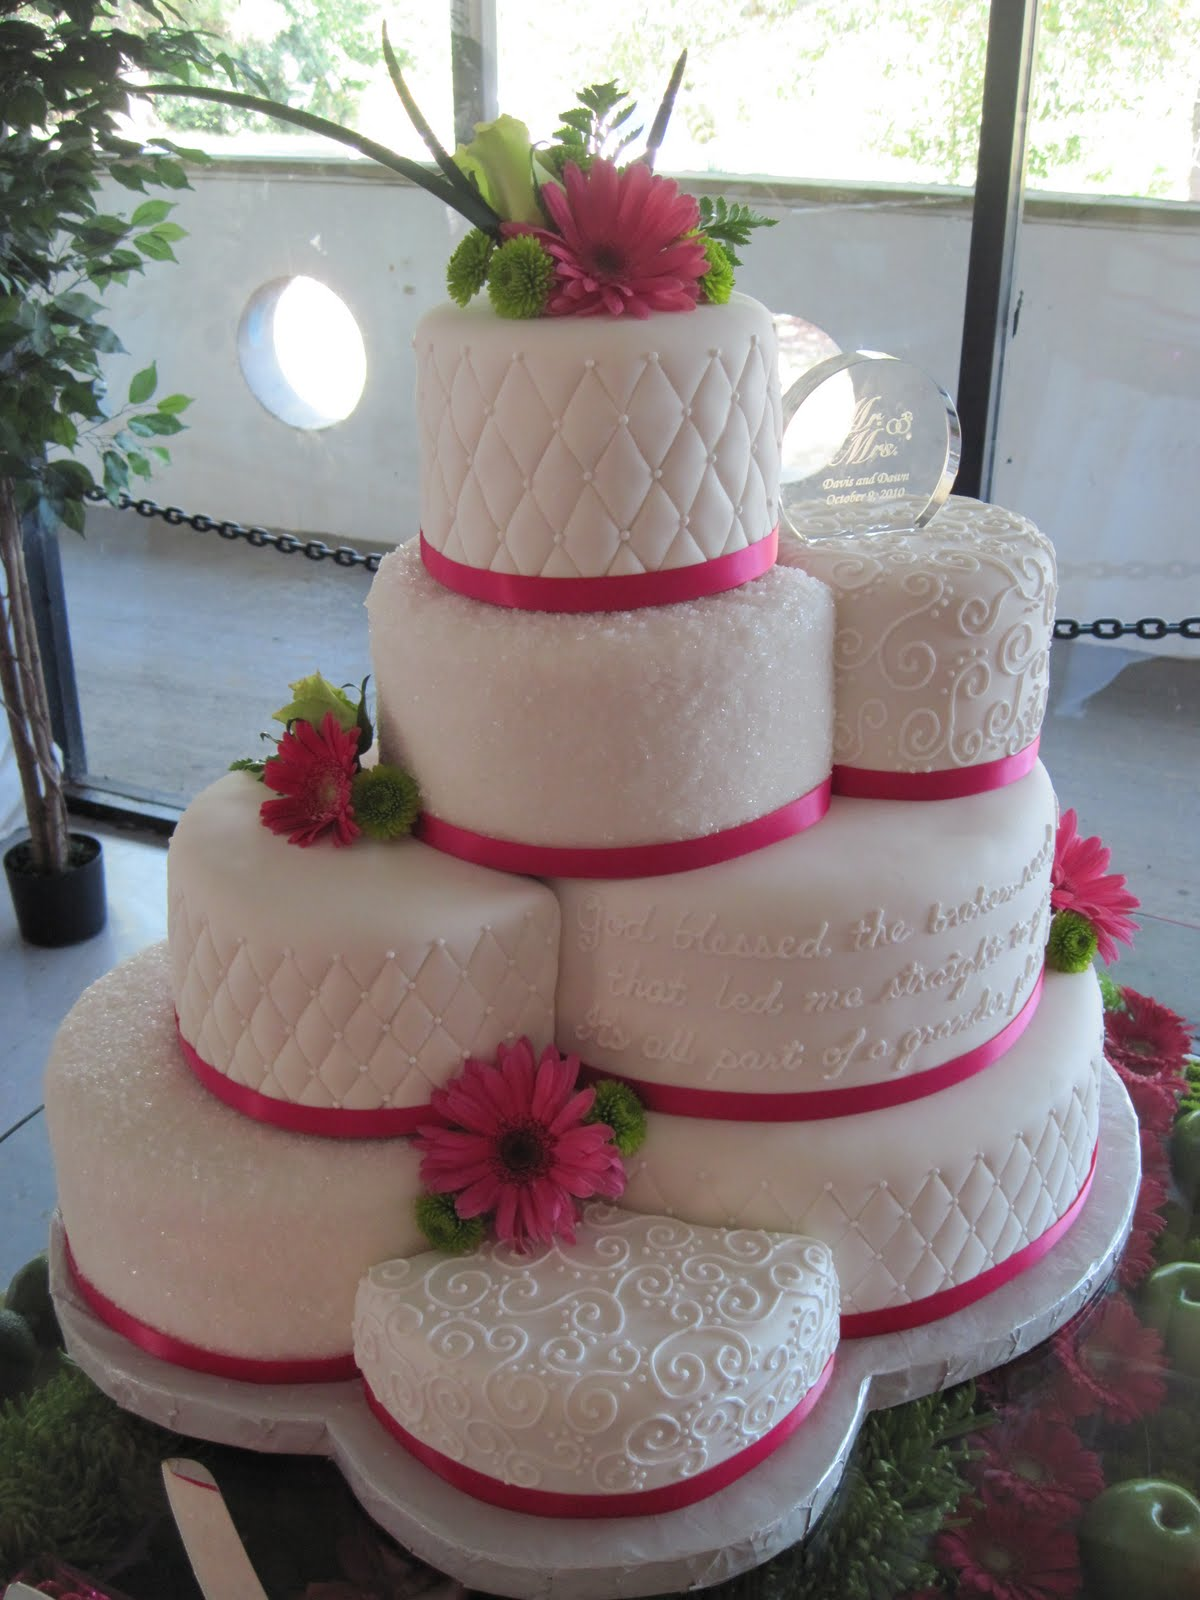 Heather s Cakes and Confections Wedding Cake